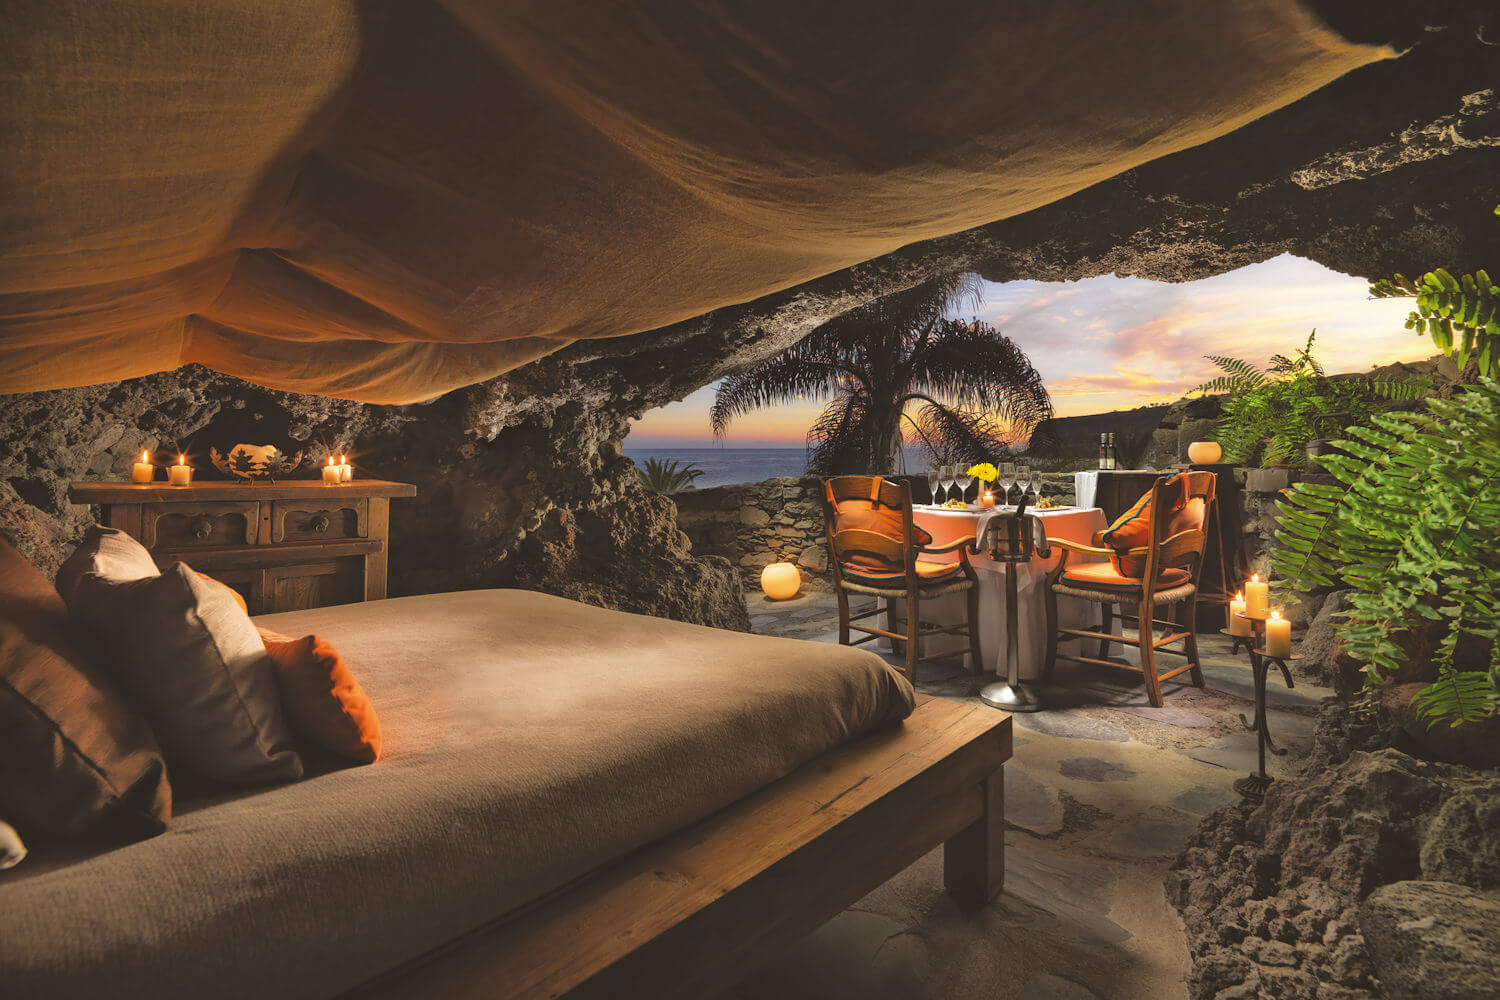 cave for two at Jardin tecina La gomera